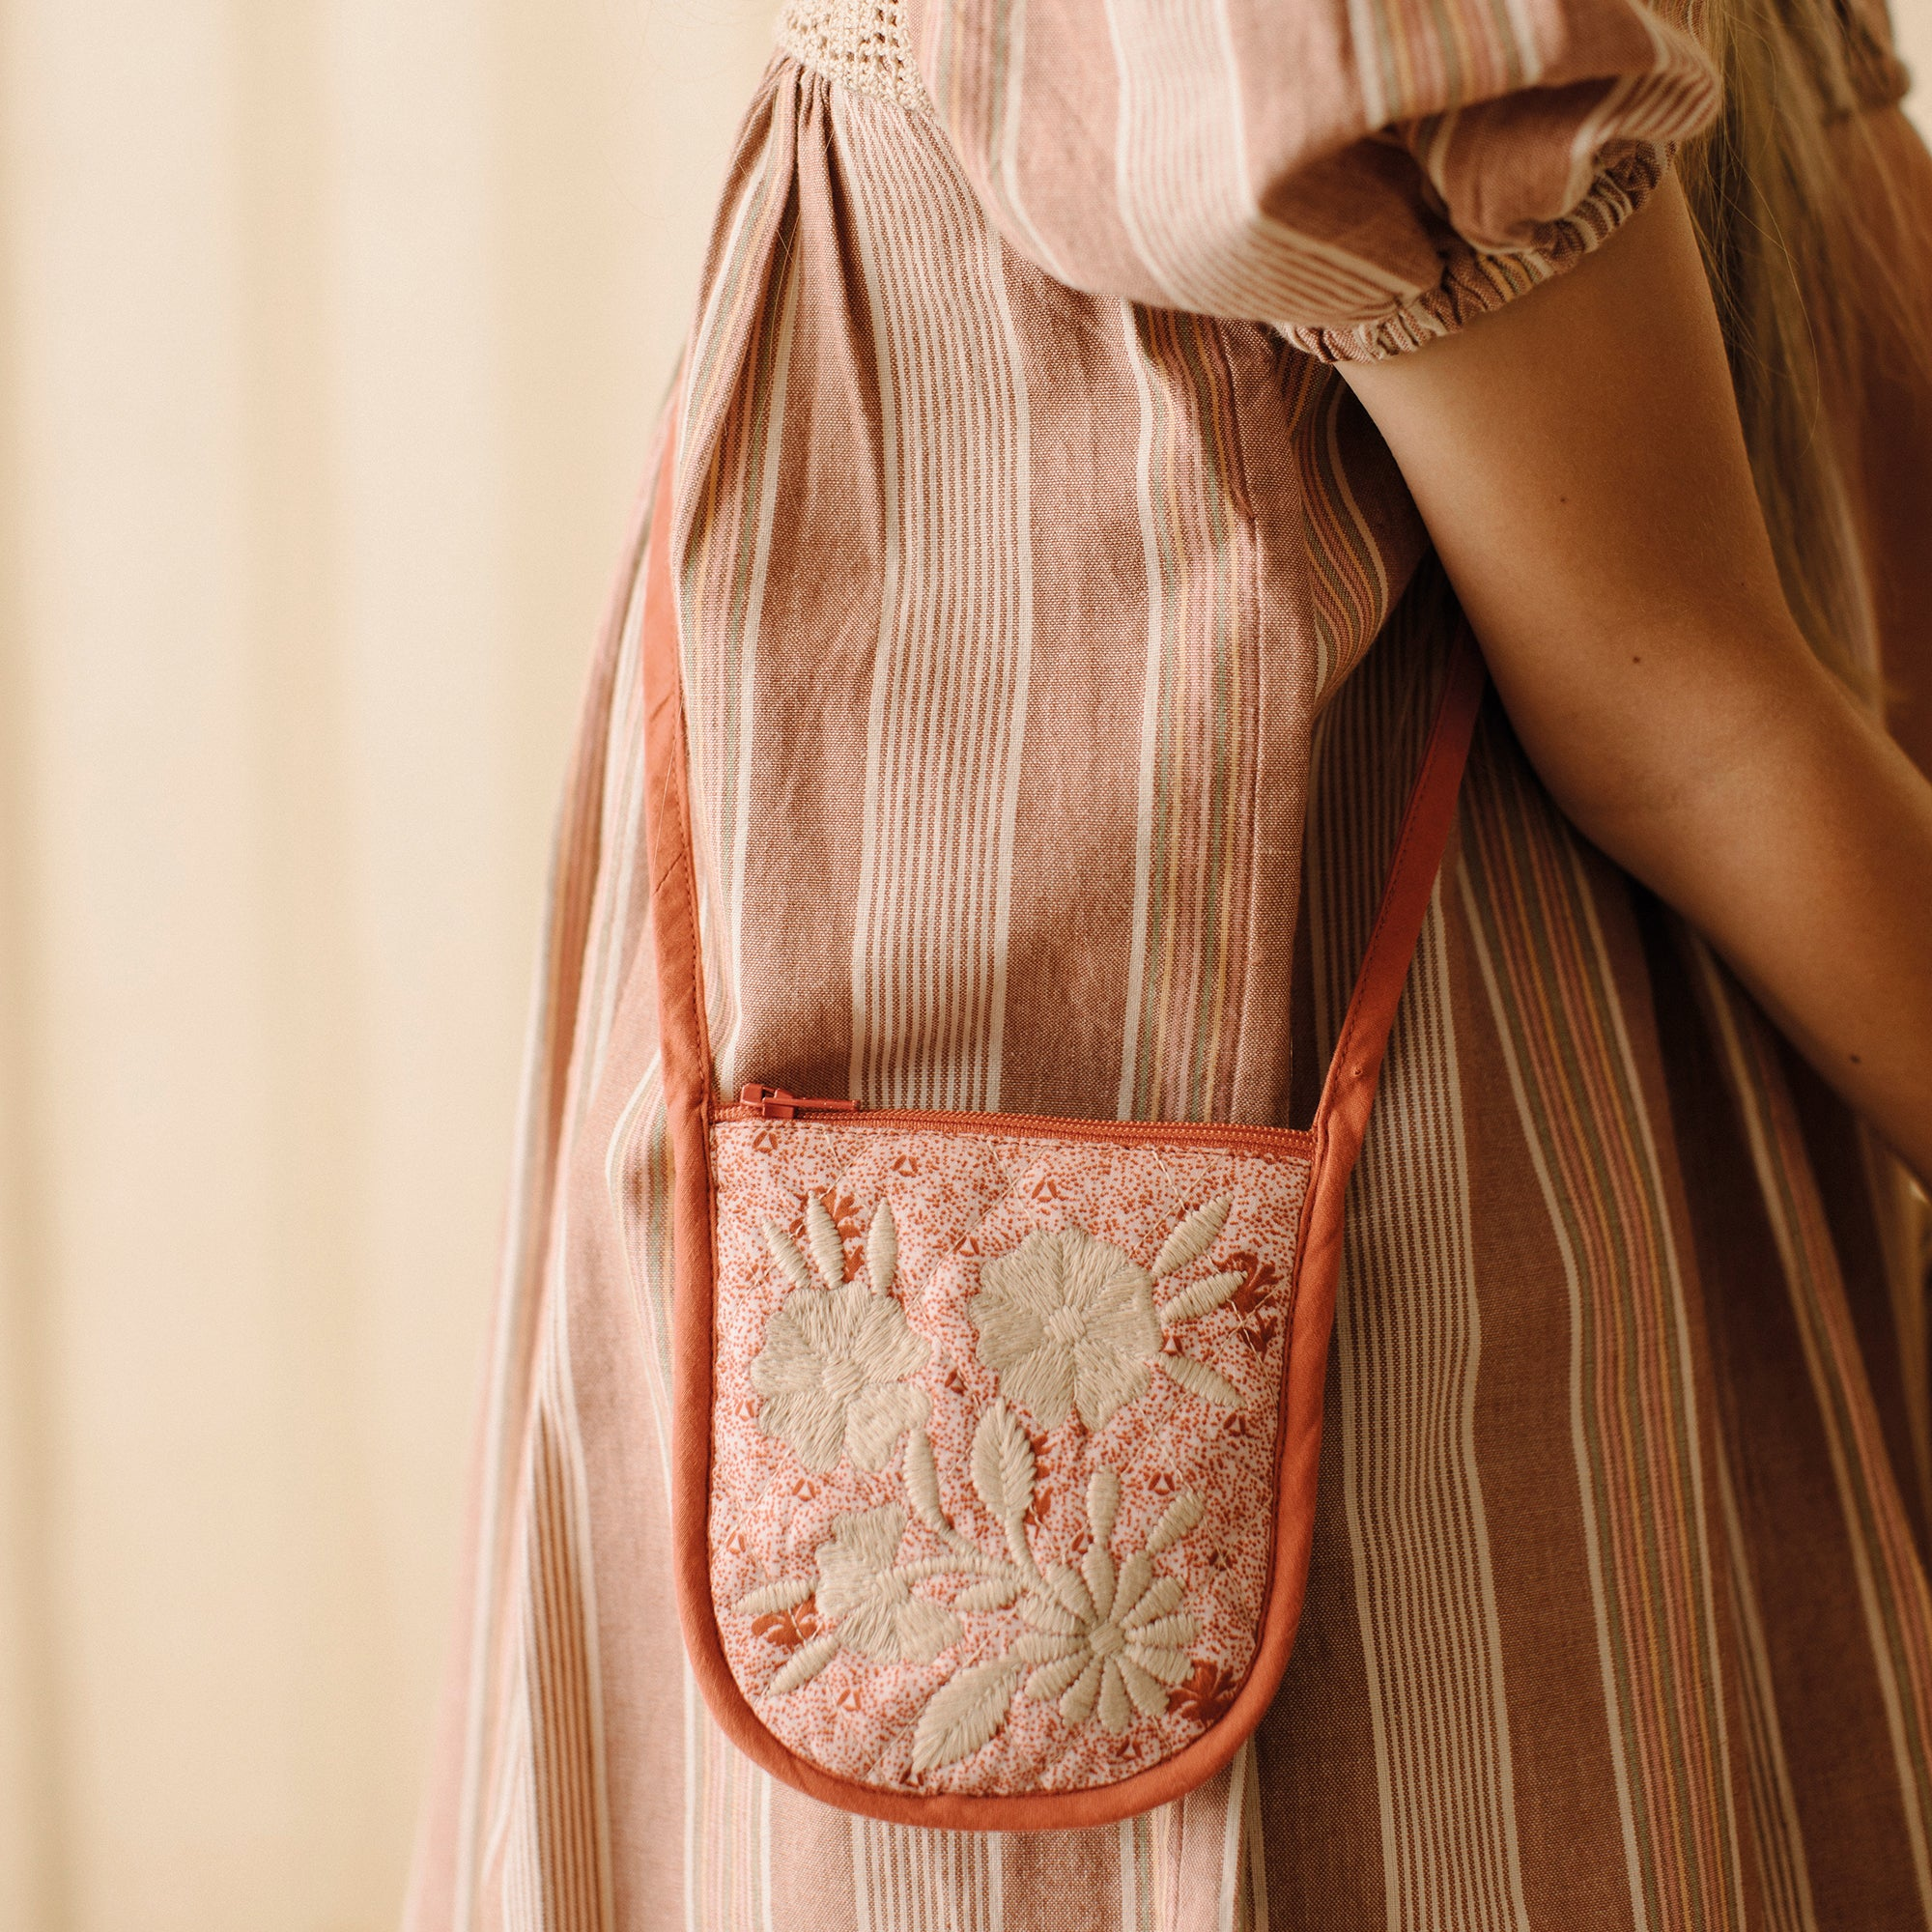 DINAH COIN BAG - RED CALICO FLORAL/ PICNIC CHECK